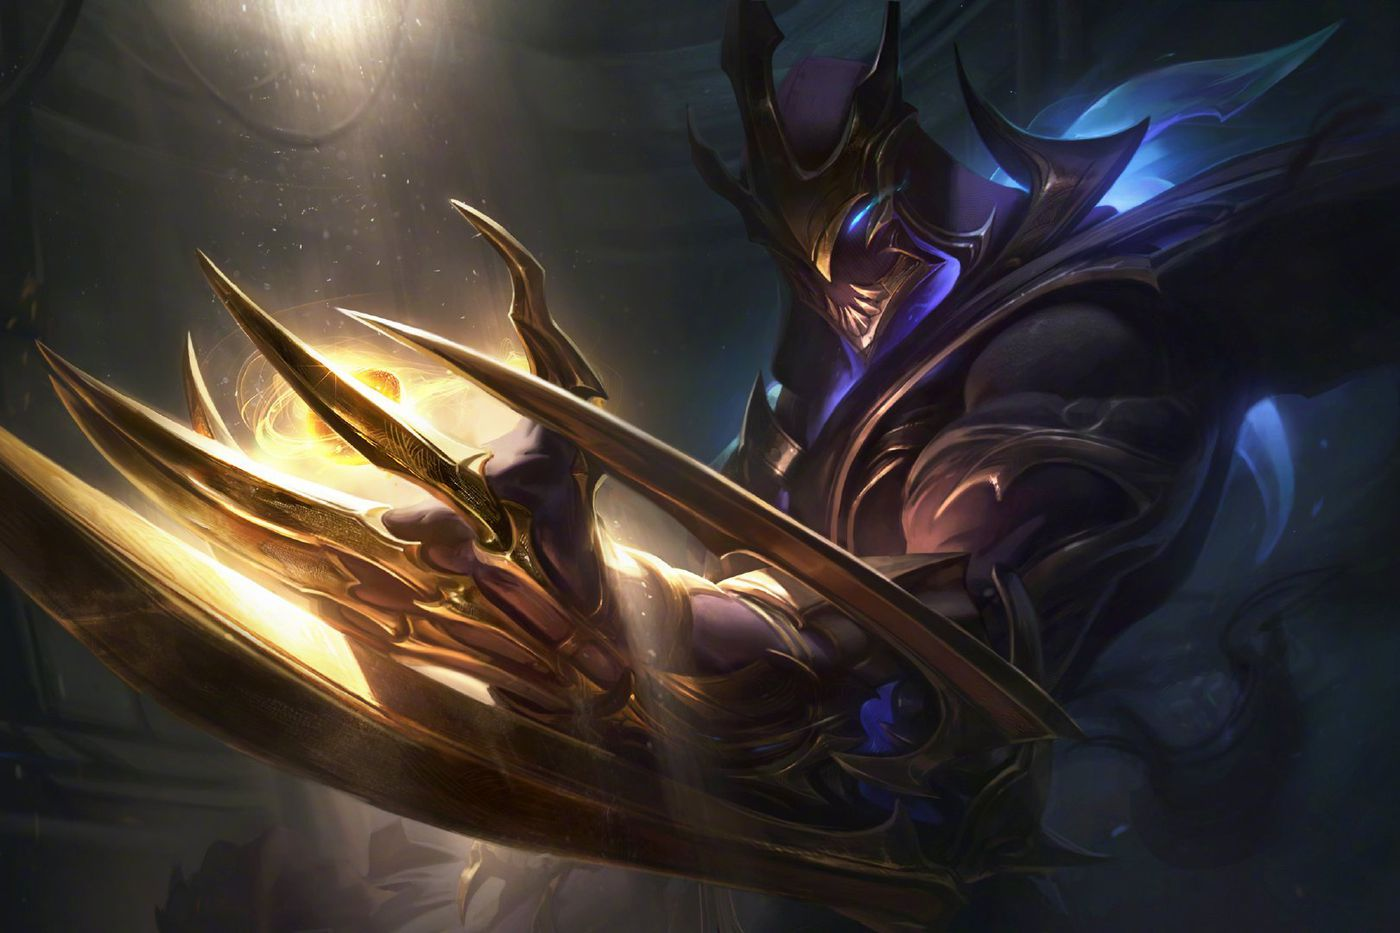 Galaxy Slayer Zed reveals the champion's face - The Rift Herald